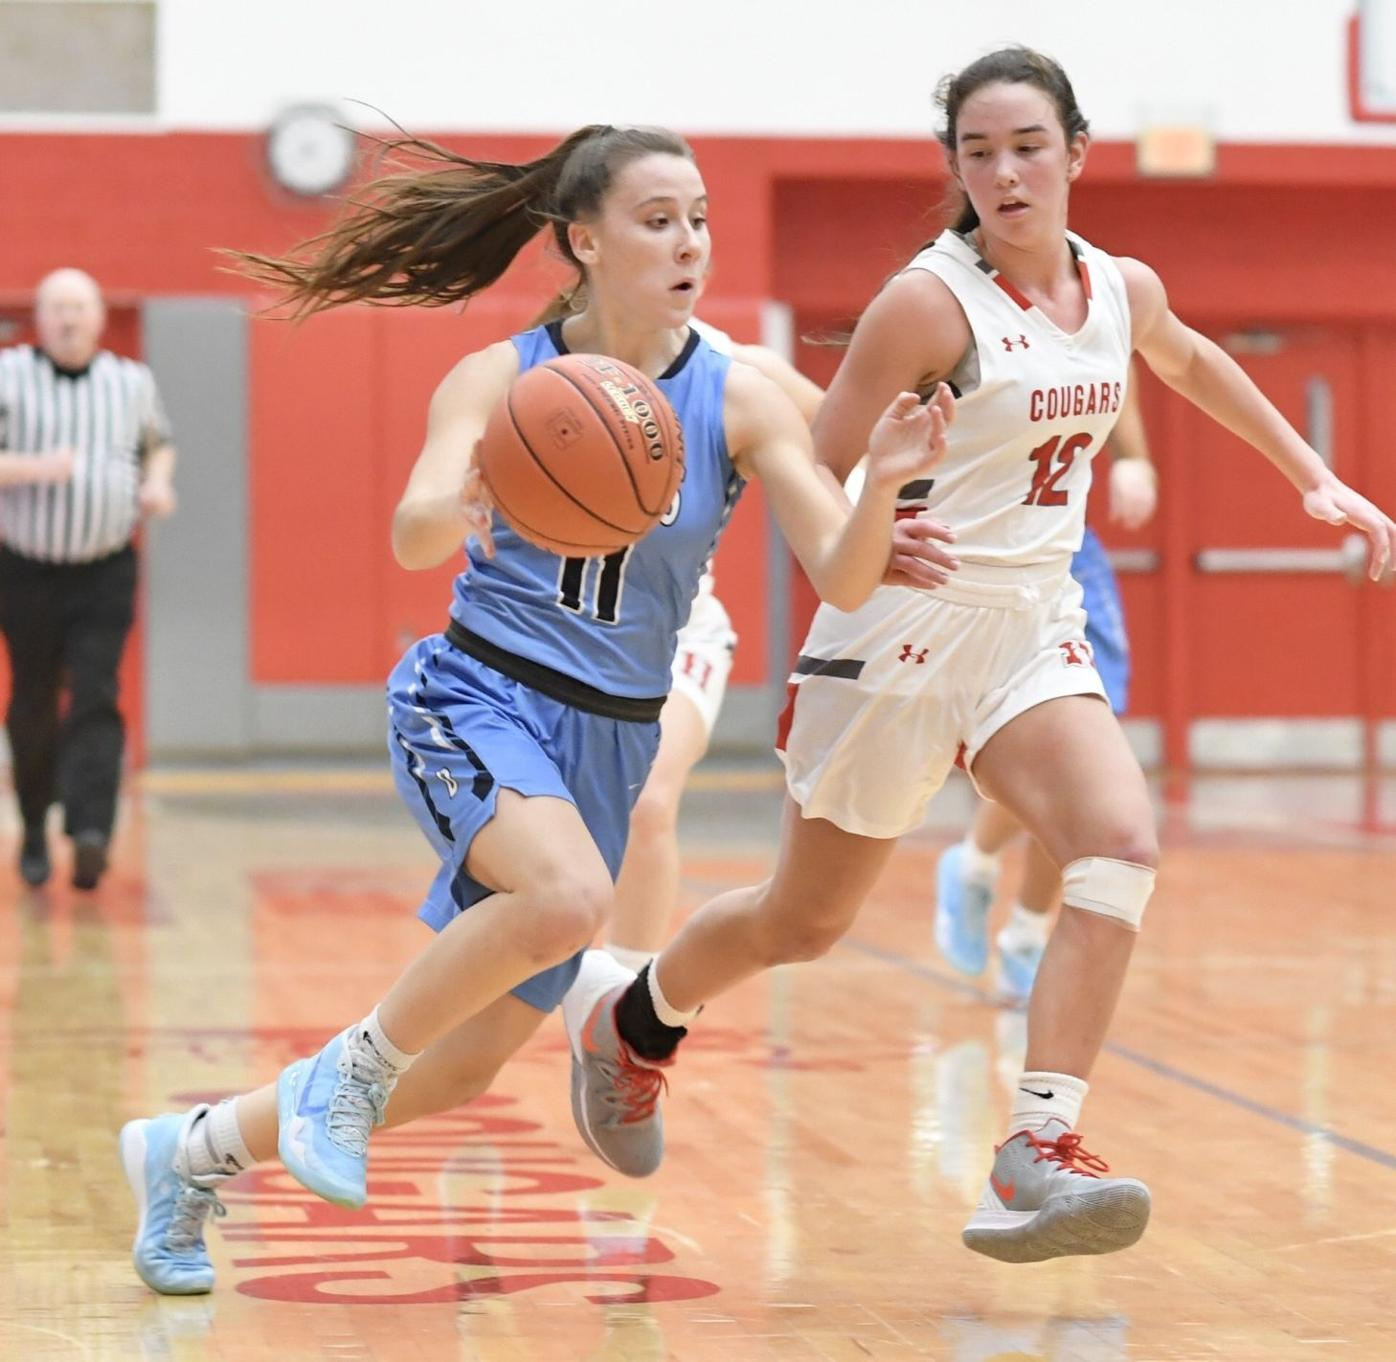 GIRLS BASKETBALL PREVIEW: Cougars, Comets open WVC play Thursday